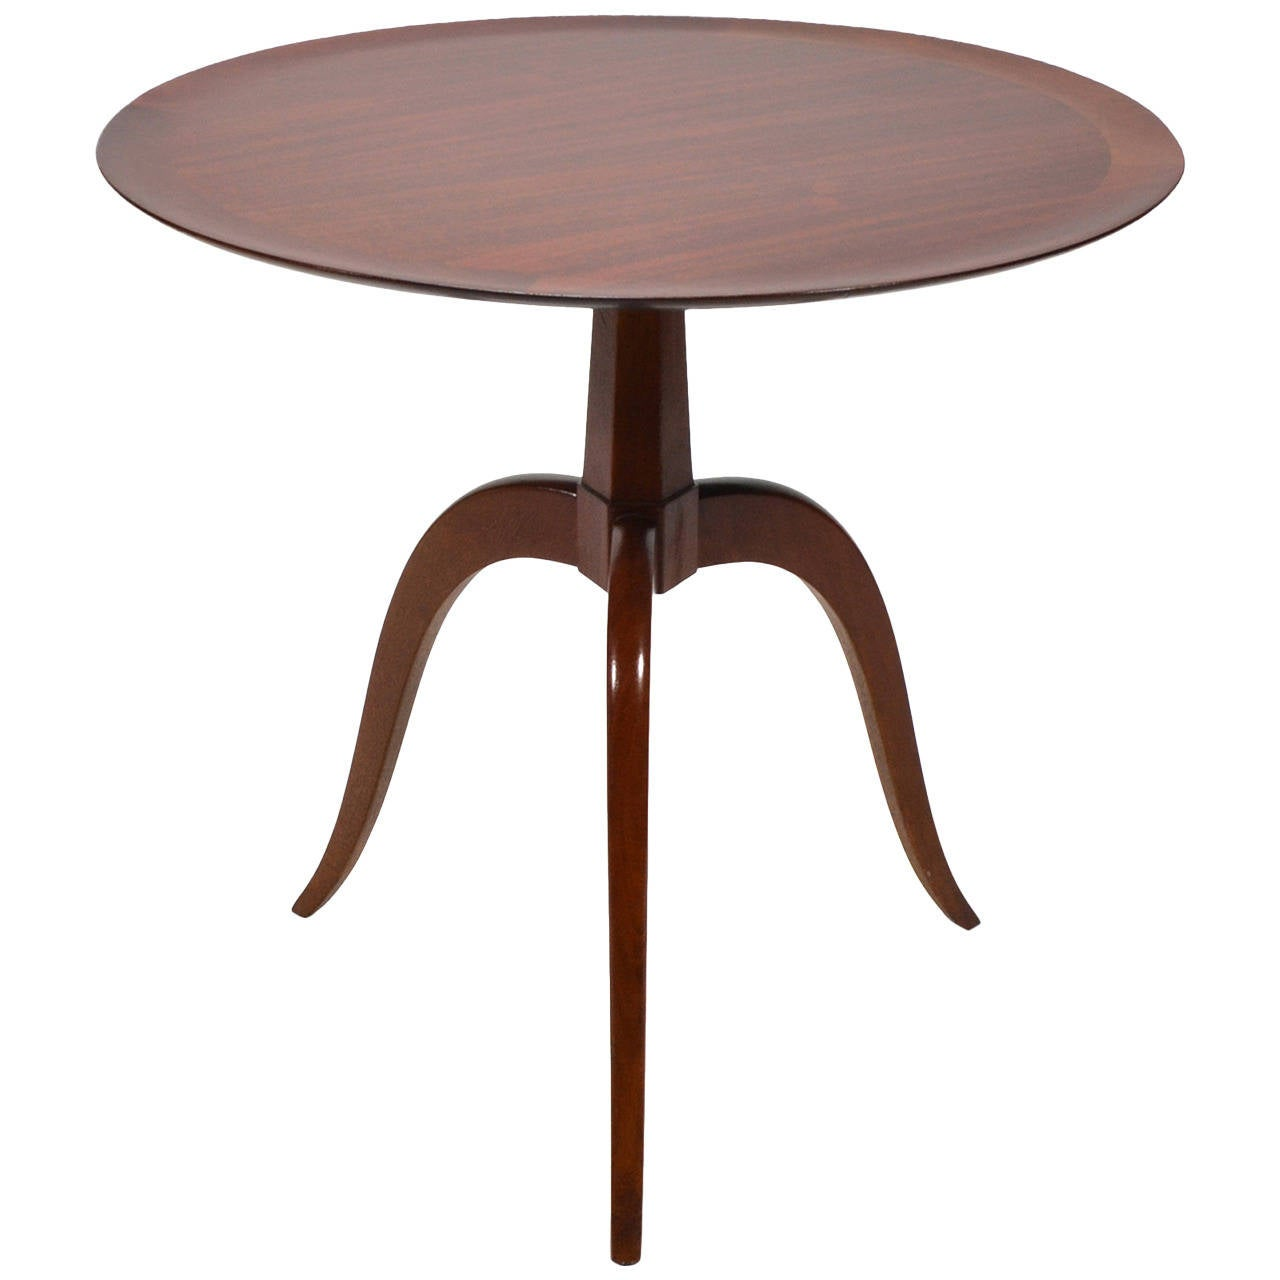 Edward wormley occasional table by dunbar at 1stdibs for Occasional table manufacturers